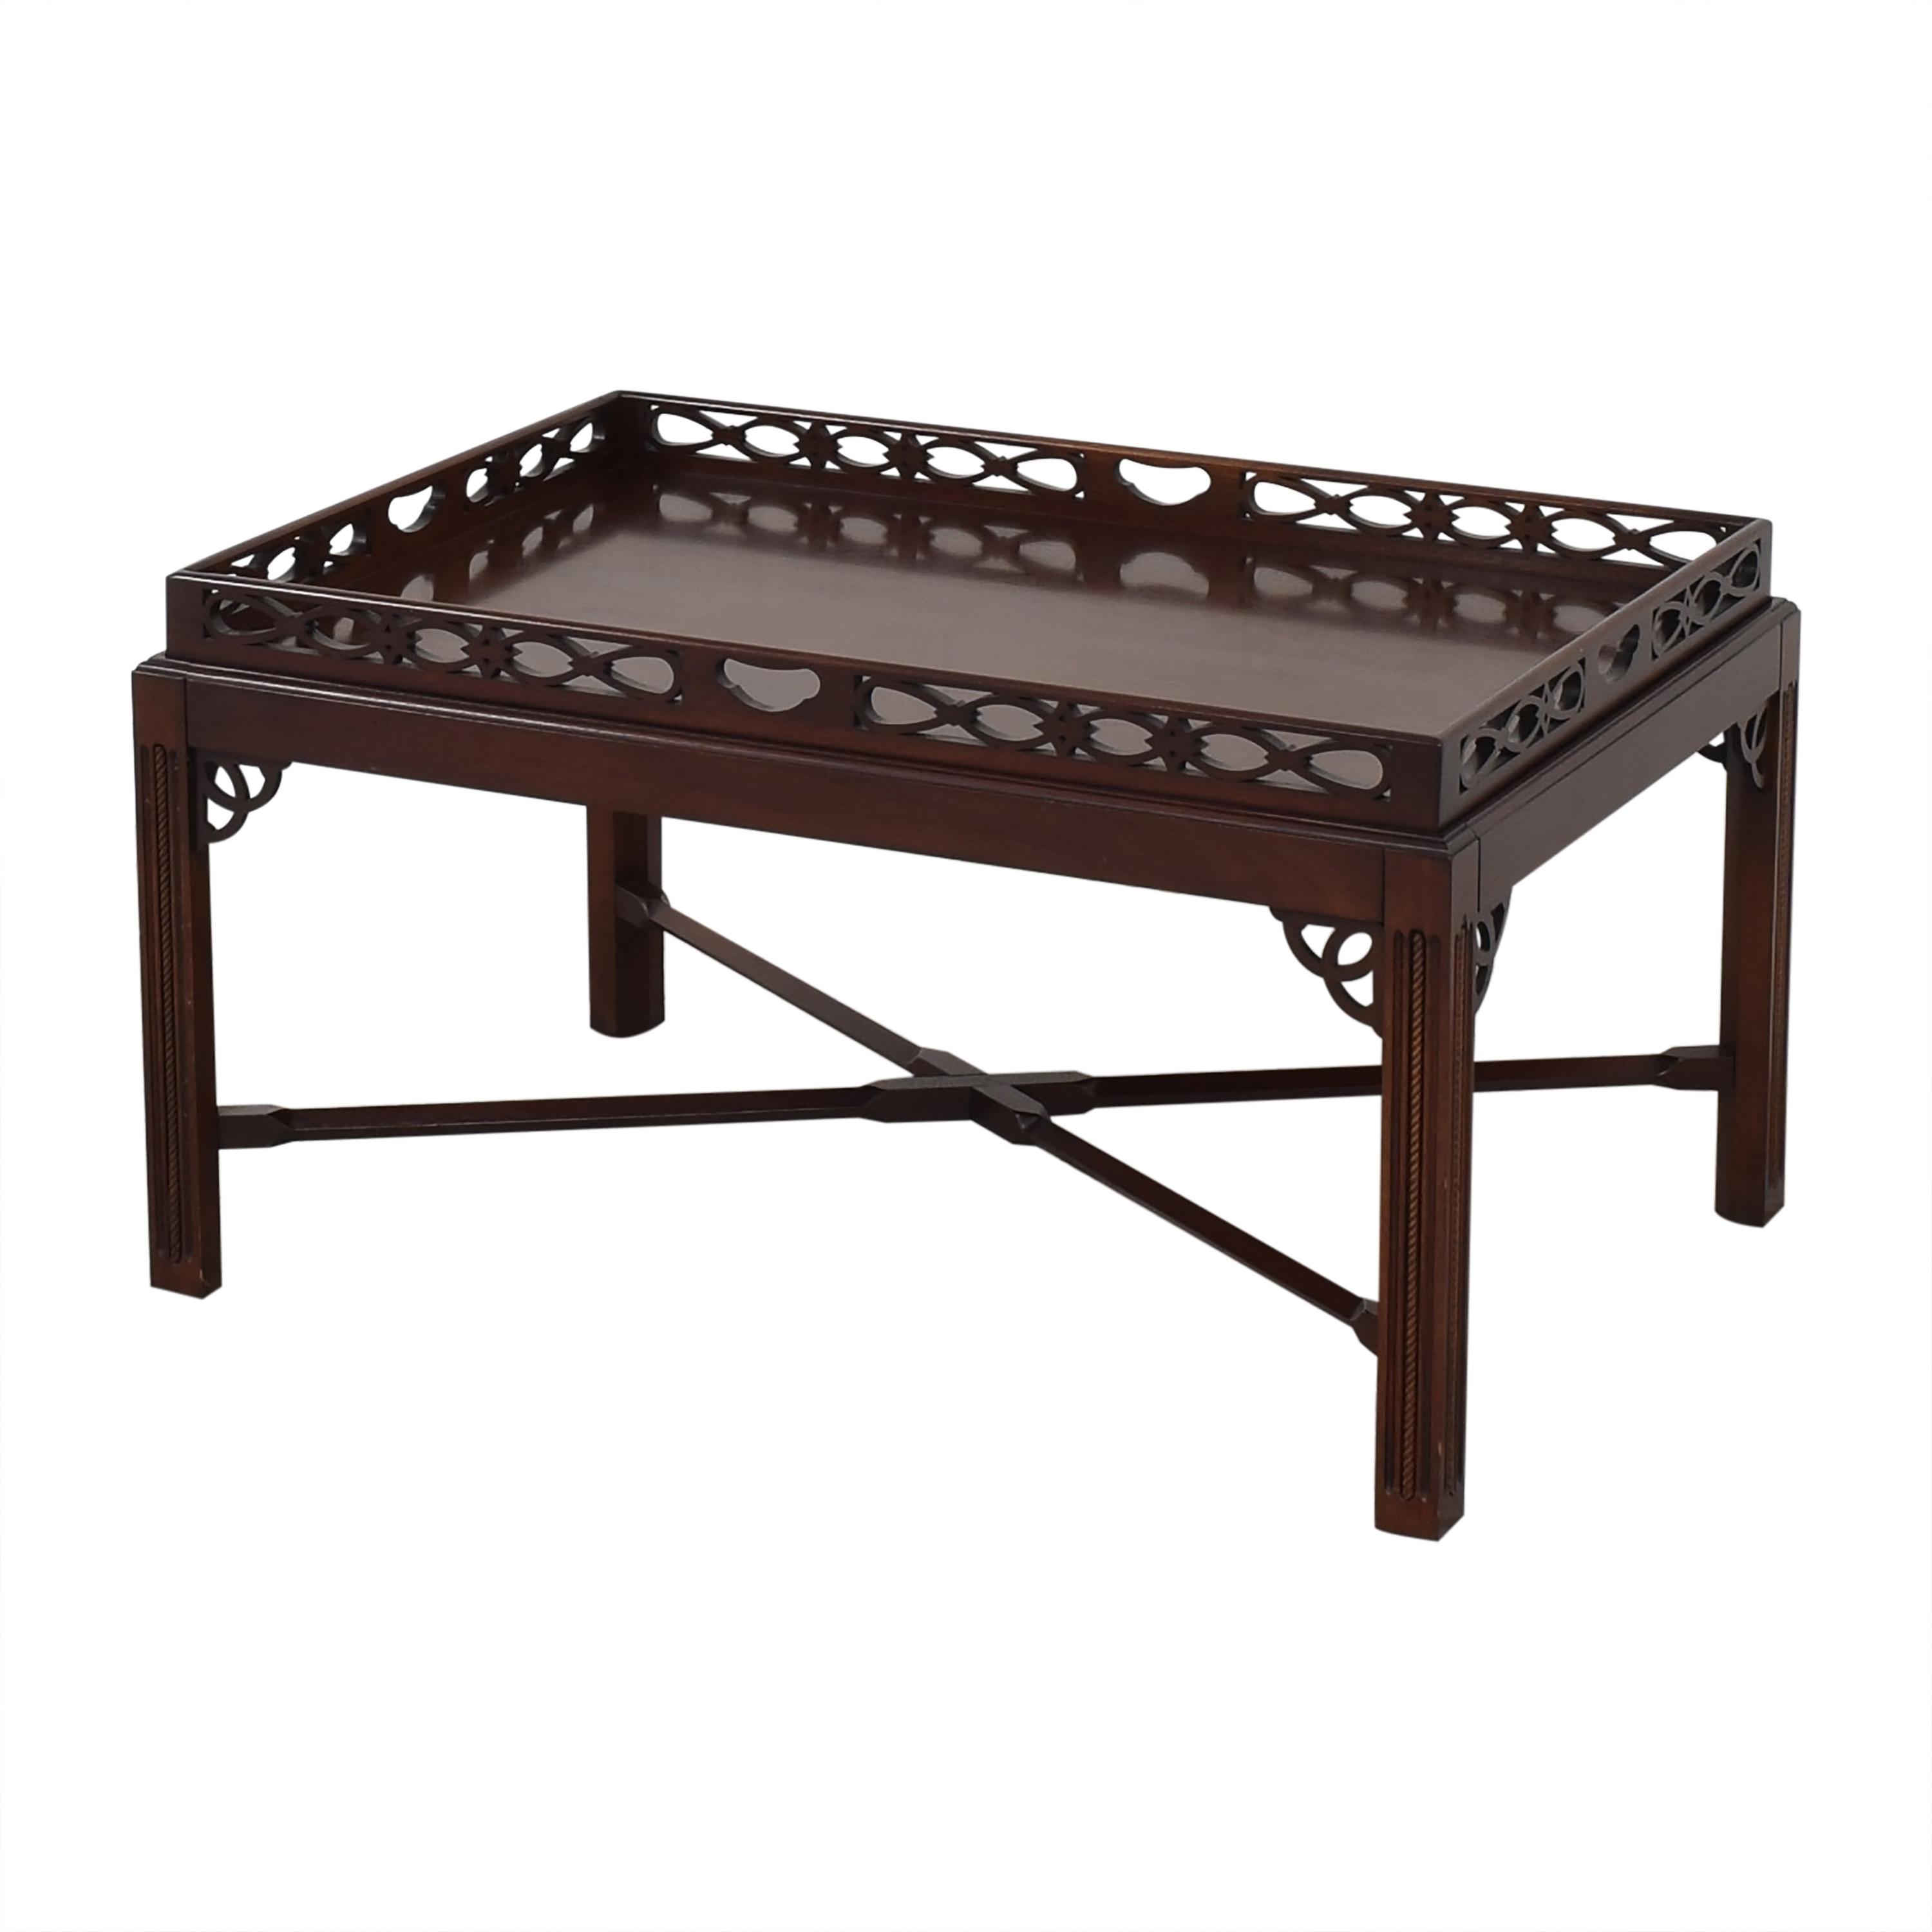 Tray Top Coffee Table second hand